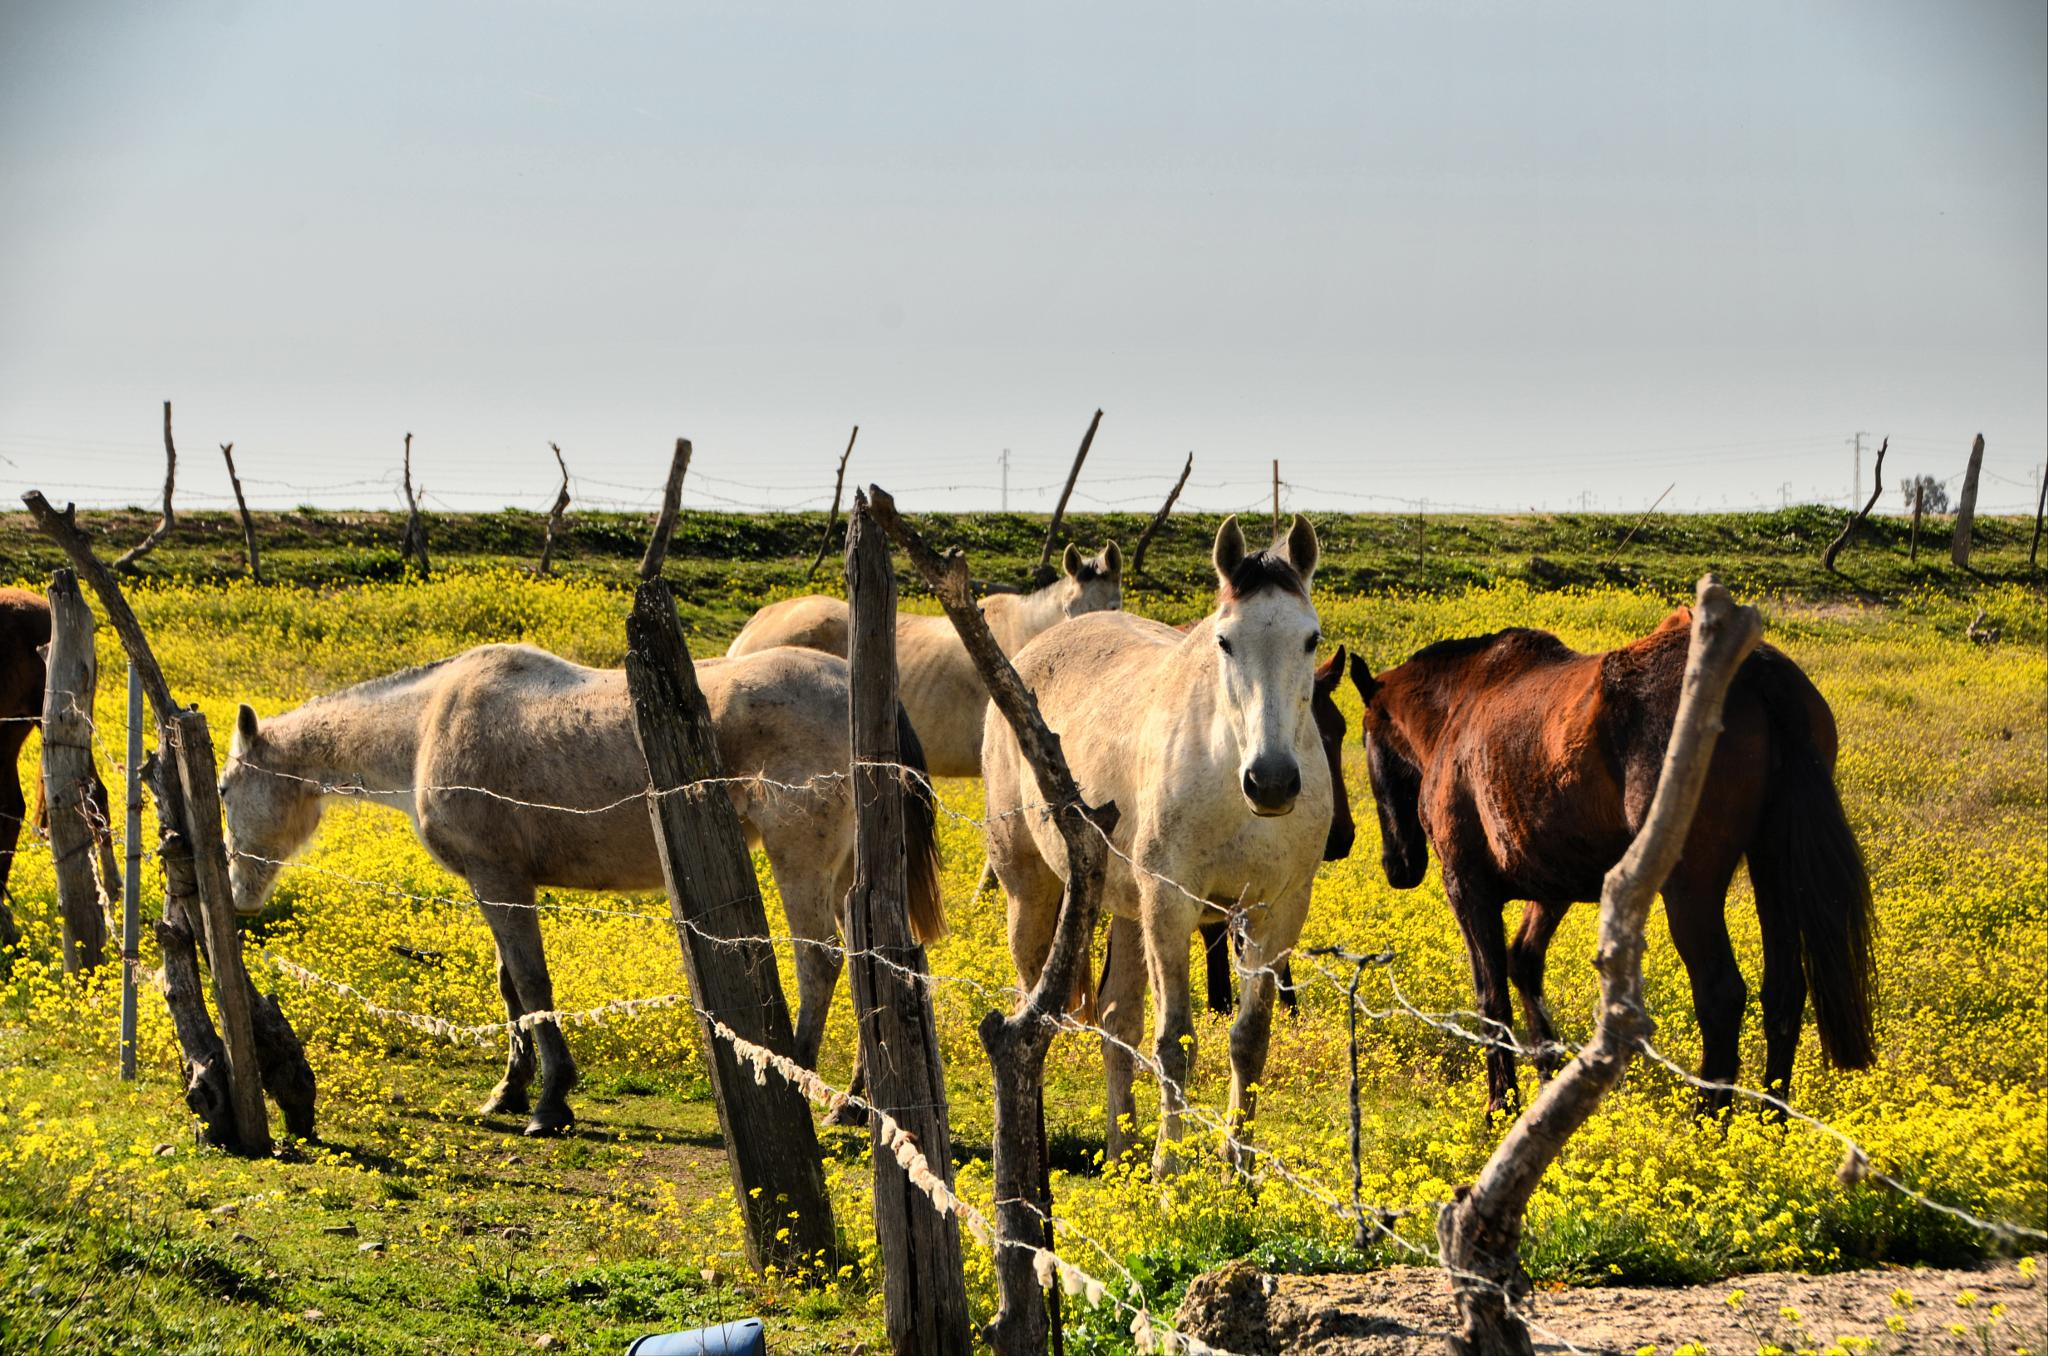 Horses 1 by Jorge Alonso